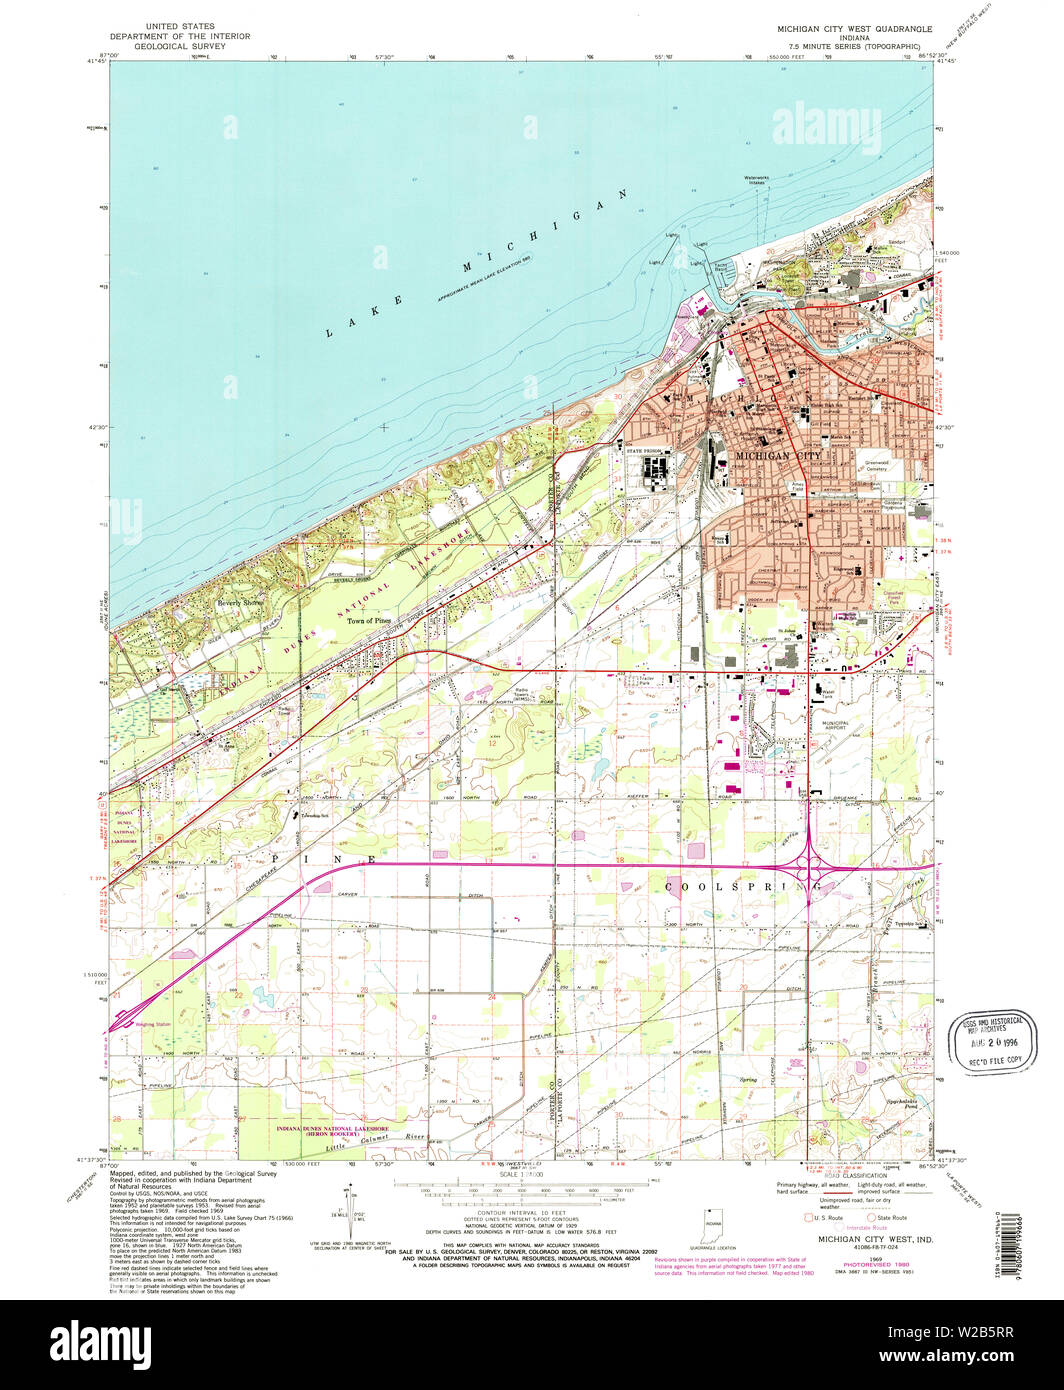 USGS TOPO Map Indiana IN Michigan City West 160678 1969 ... Map Michigan City Indiana on trail creek indiana map, weather lansing michigan map, mongo indiana map, usa map, south bend indiana map, hammond indiana map, michigan city apartments, michigan city area map, burlington indiana map, wawasee indiana map, wisconsin indiana map, tell city map, michigan city lighthouse, saturn indiana map, waynetown indiana map, michigan border map, united states indiana map, gardner indiana map, michigan city in map, bethel college indiana map,